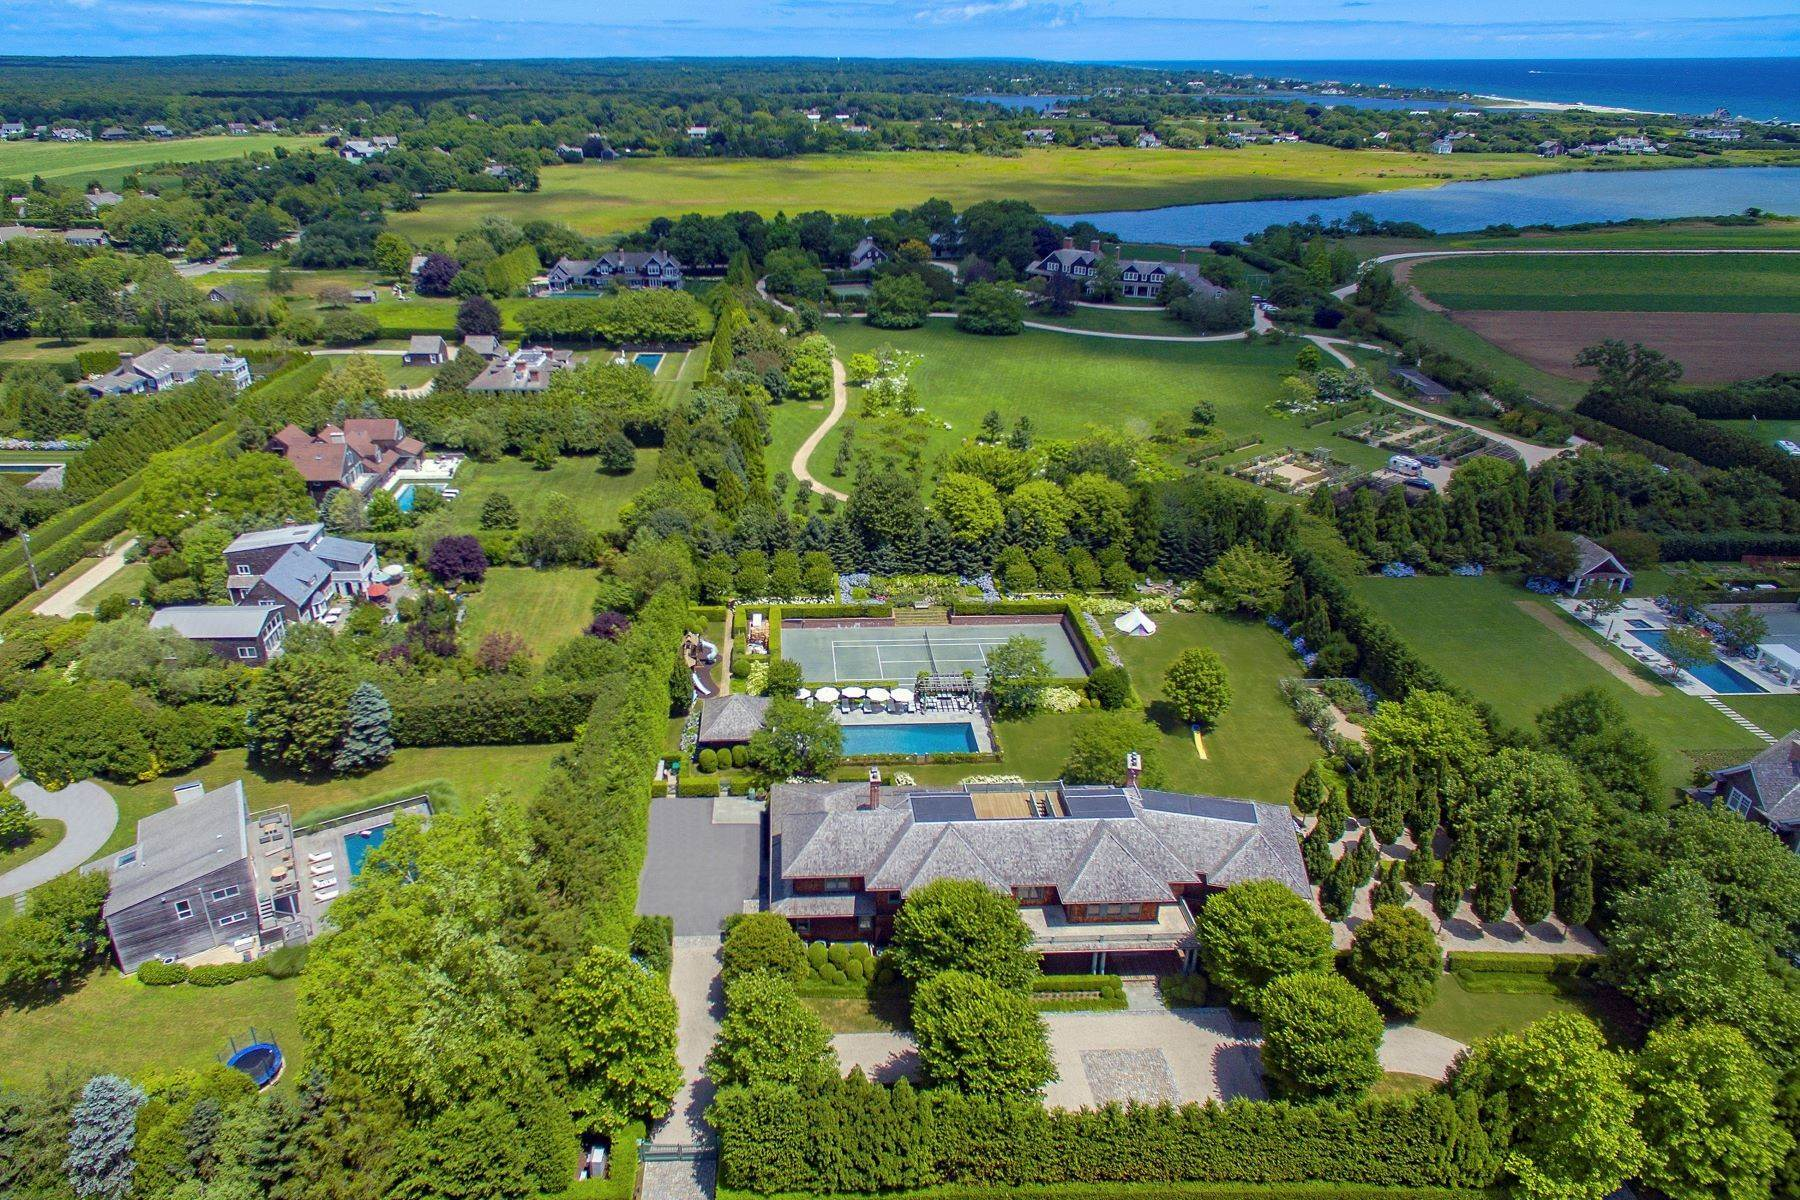 Single Family Homes for Sale at Exceptional Estate On Town Line Road 109 Town Line Road Wainscott, New York 11975 United States